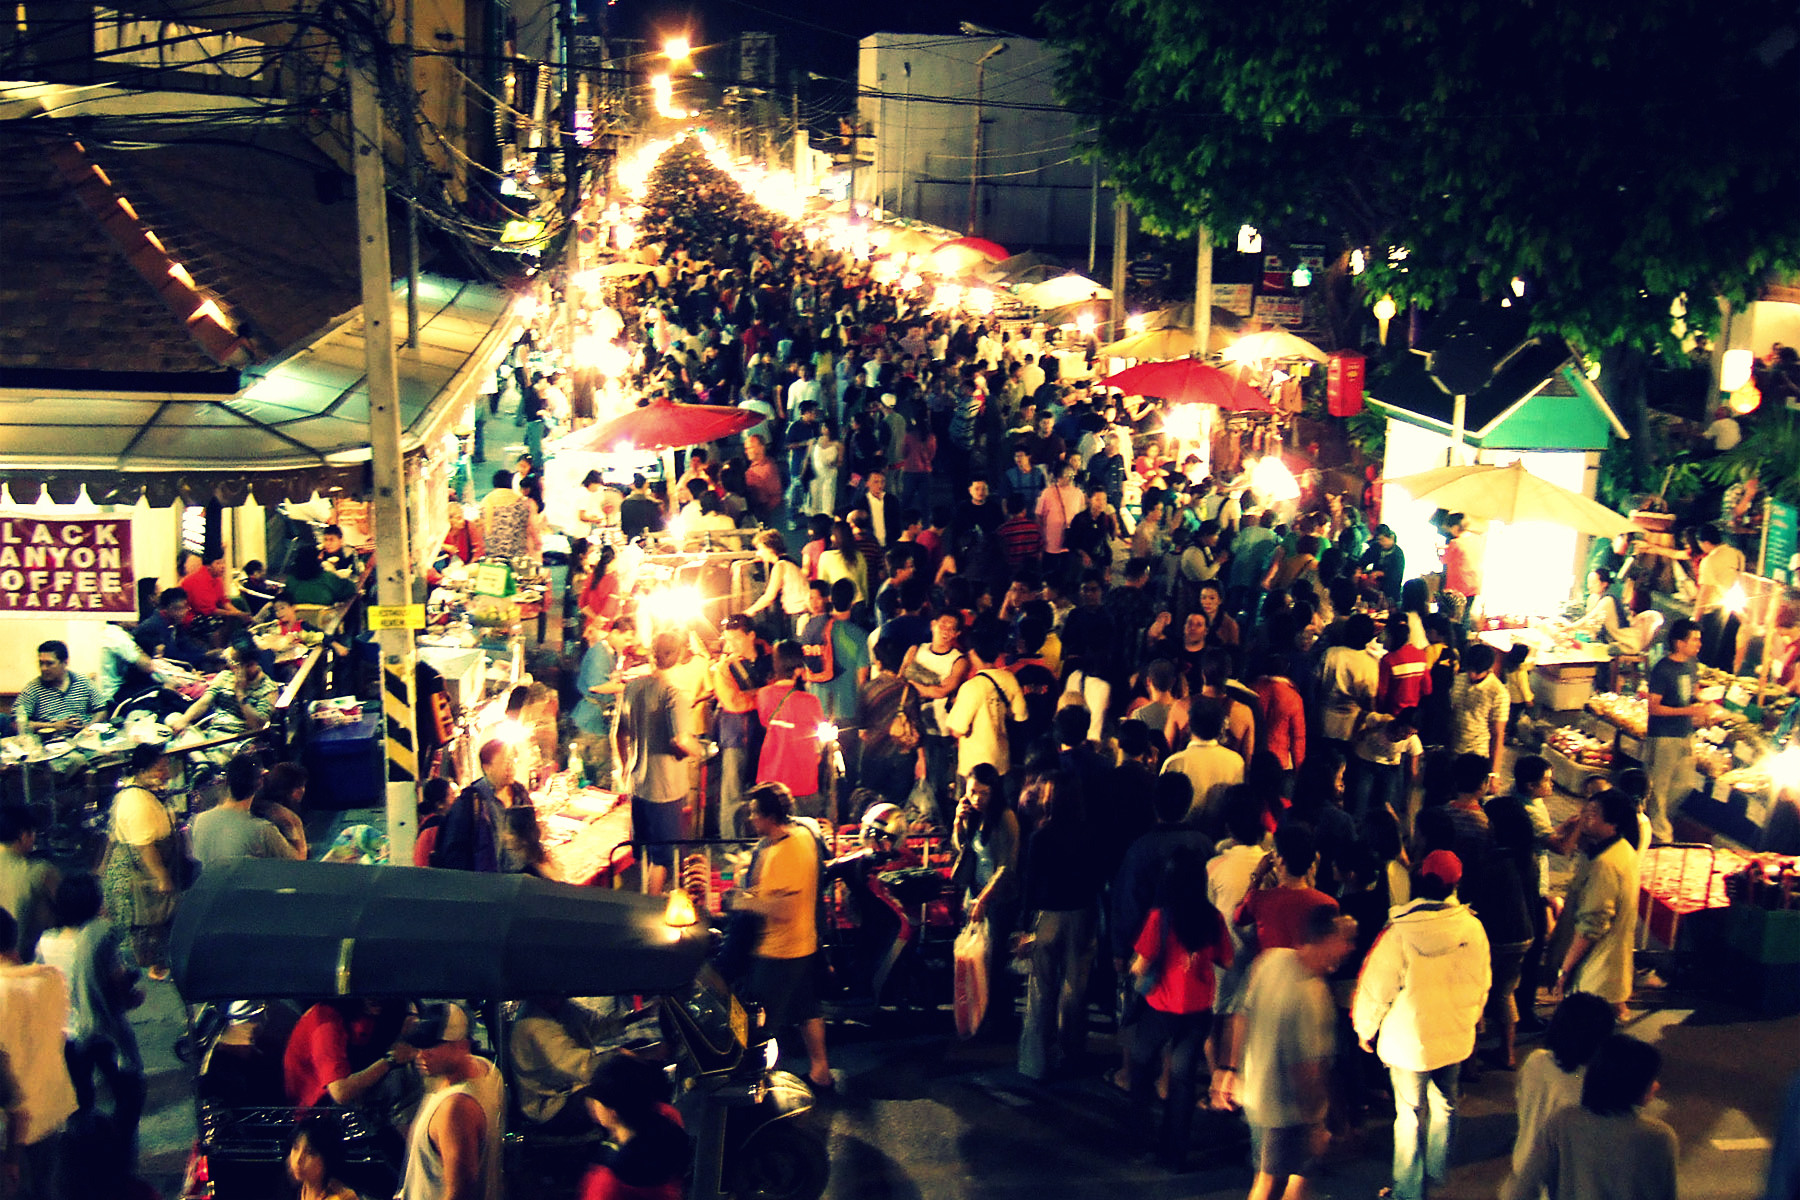 night market Summer is coming #626nightmarket2018 the original and largest asian-themed night market in the united states.